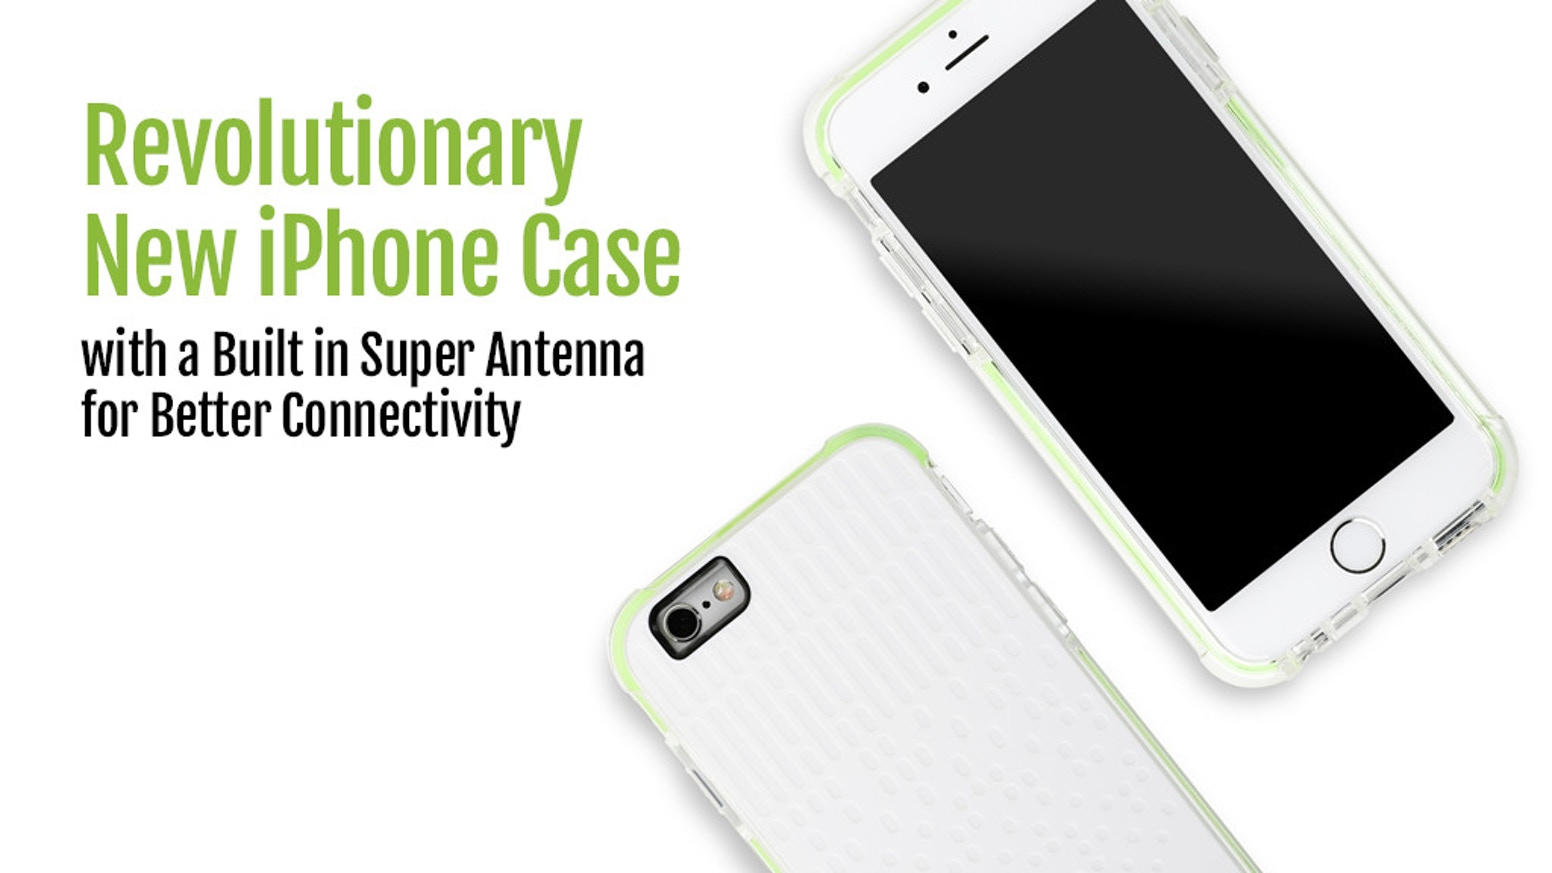 Meet Firefly Worlds First Super Antenna Iphone Case By Pete Peng Signal Booster Short Wave Radio Electronics Project Is The That Not Only Protects Your Phone But Improves Cellular